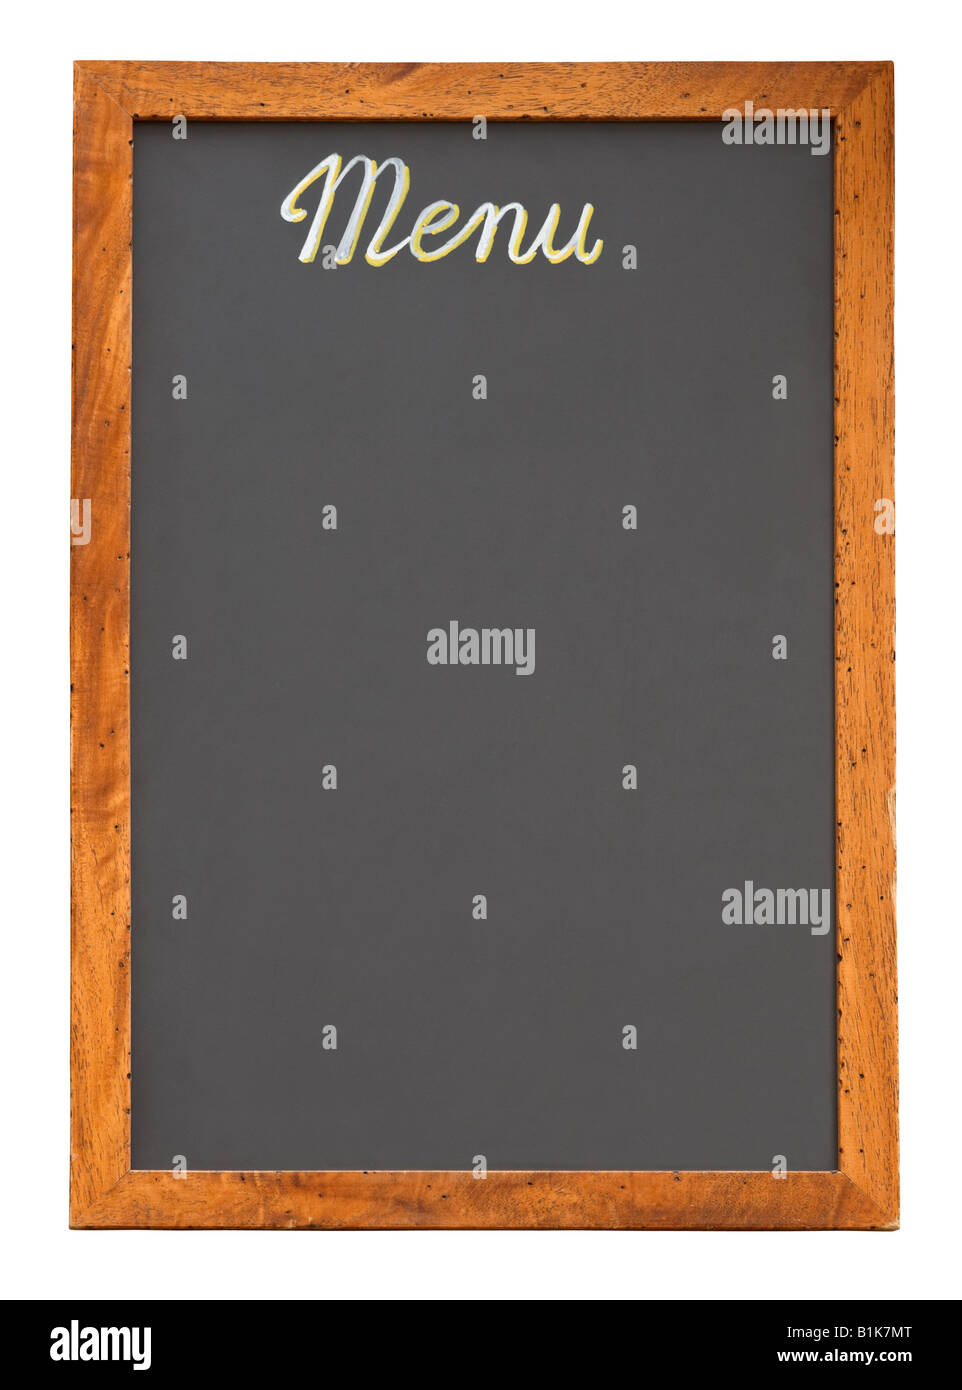 Menu restaurant vide tableau isolé sur fond blanc Photo Stock